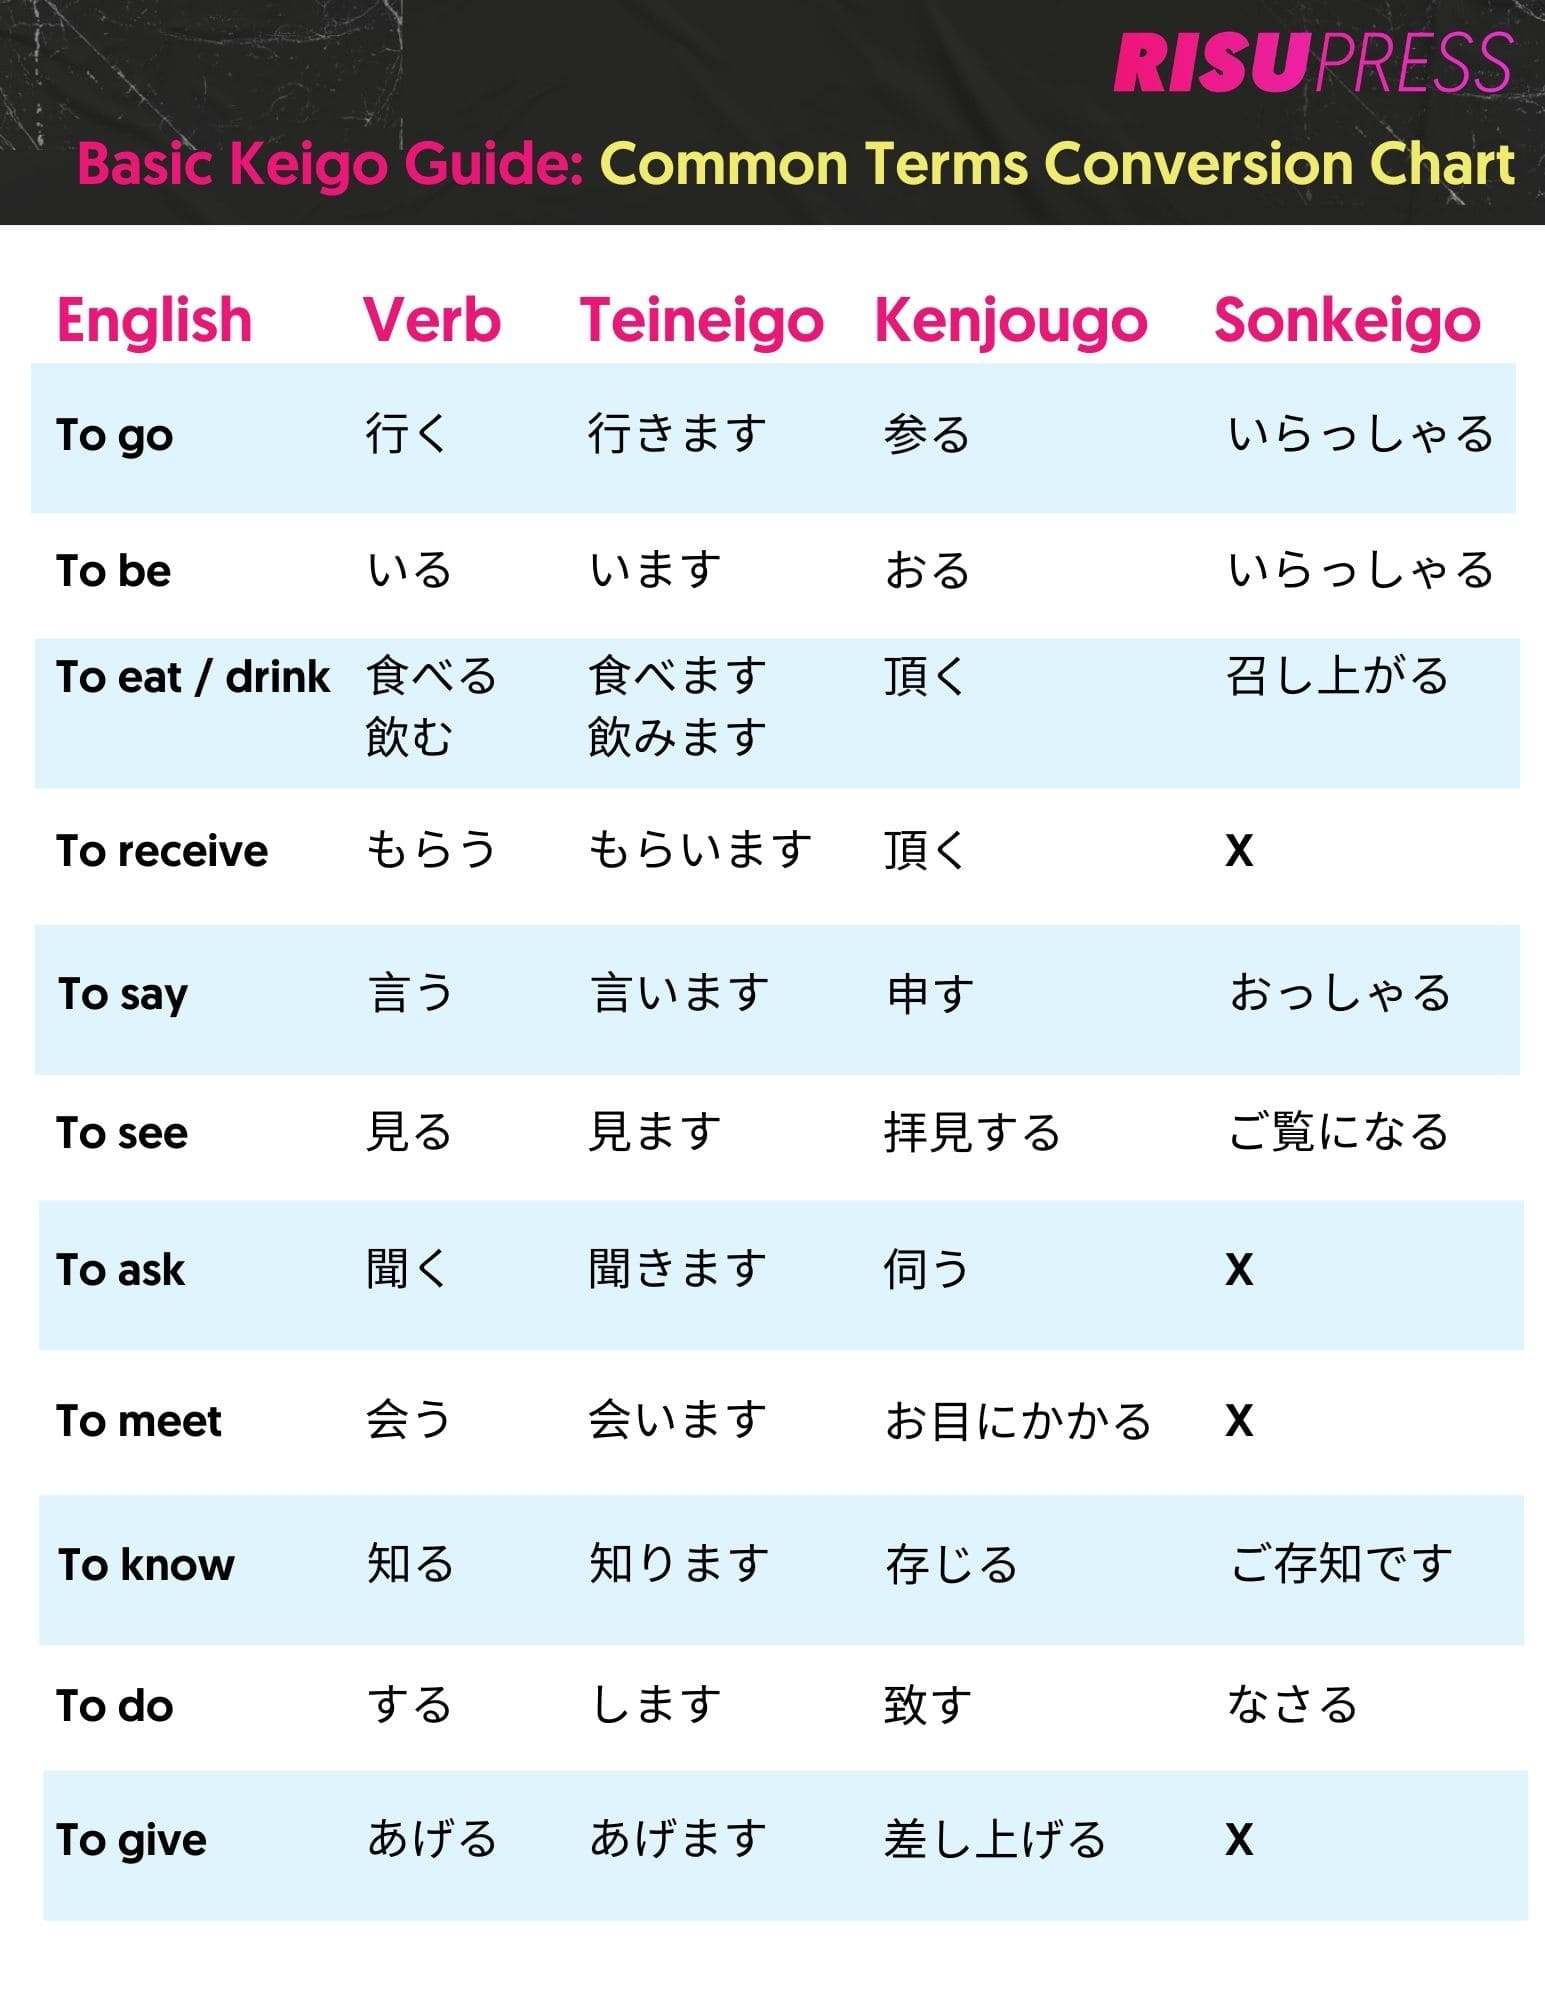 Chart outlining common terms in Japanese and their conversion to keigo